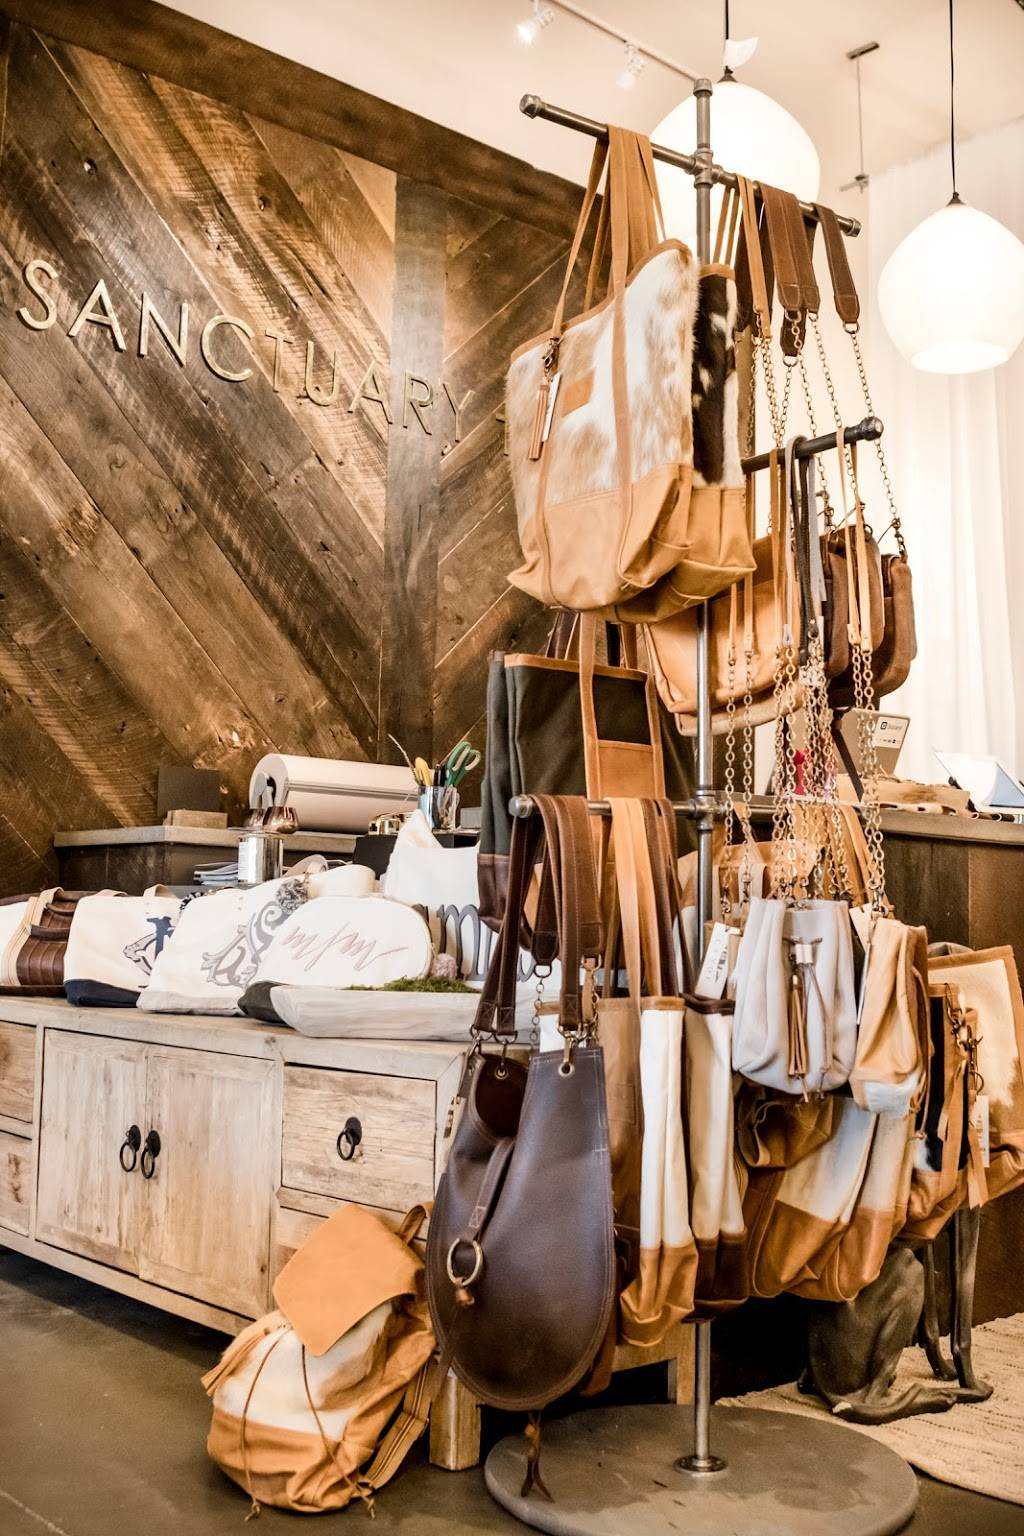 Sanctuary South - home goods store  | Photo 9 of 10 | Address: Westhaven Town Center, 158 Front Street, Suite 104, Franklin, TN 37064, USA | Phone: (615) 435-3779